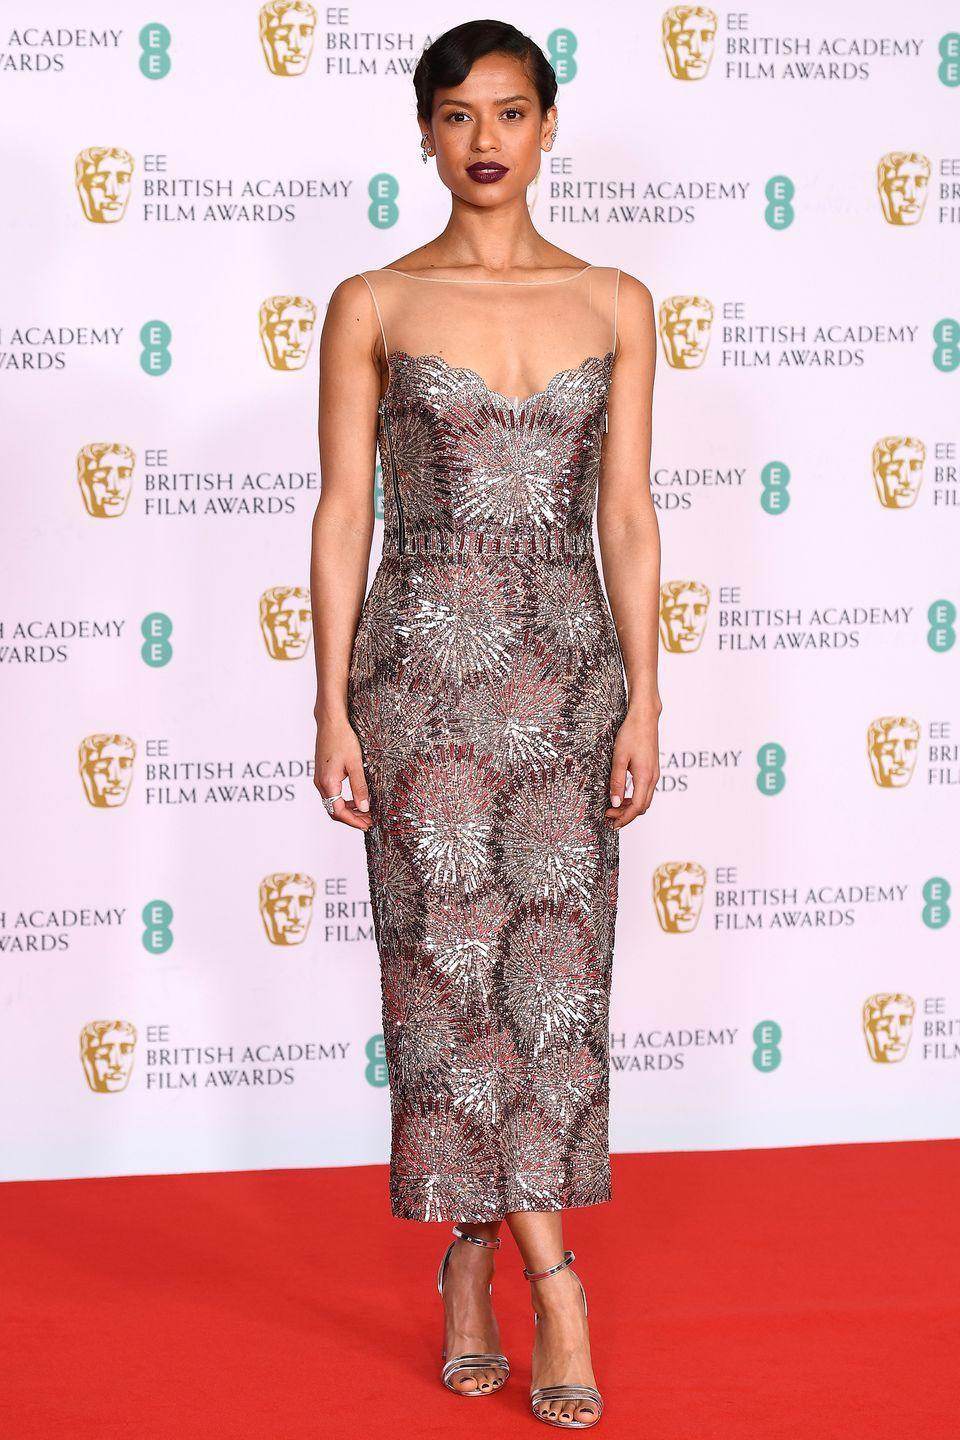 <p>Gugu Mbatha-Raw also wore one of her best red-carpet looks to date for the 2021 BAFTAs, choosing a beautiful embellished dress by Louis Vuitton which she teamed with strappy sandals and an old Hollywood-inspired beauty look.</p>